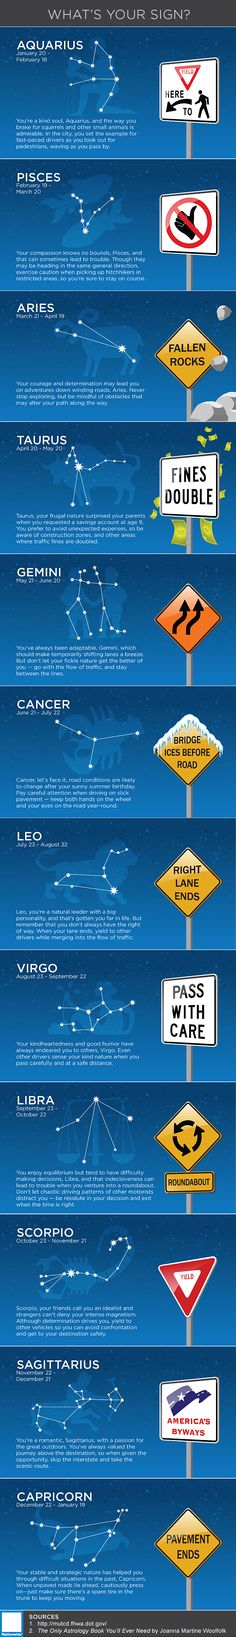 Whats's your sign? Discover which road sign best matches your personality in our horoscope infographic.